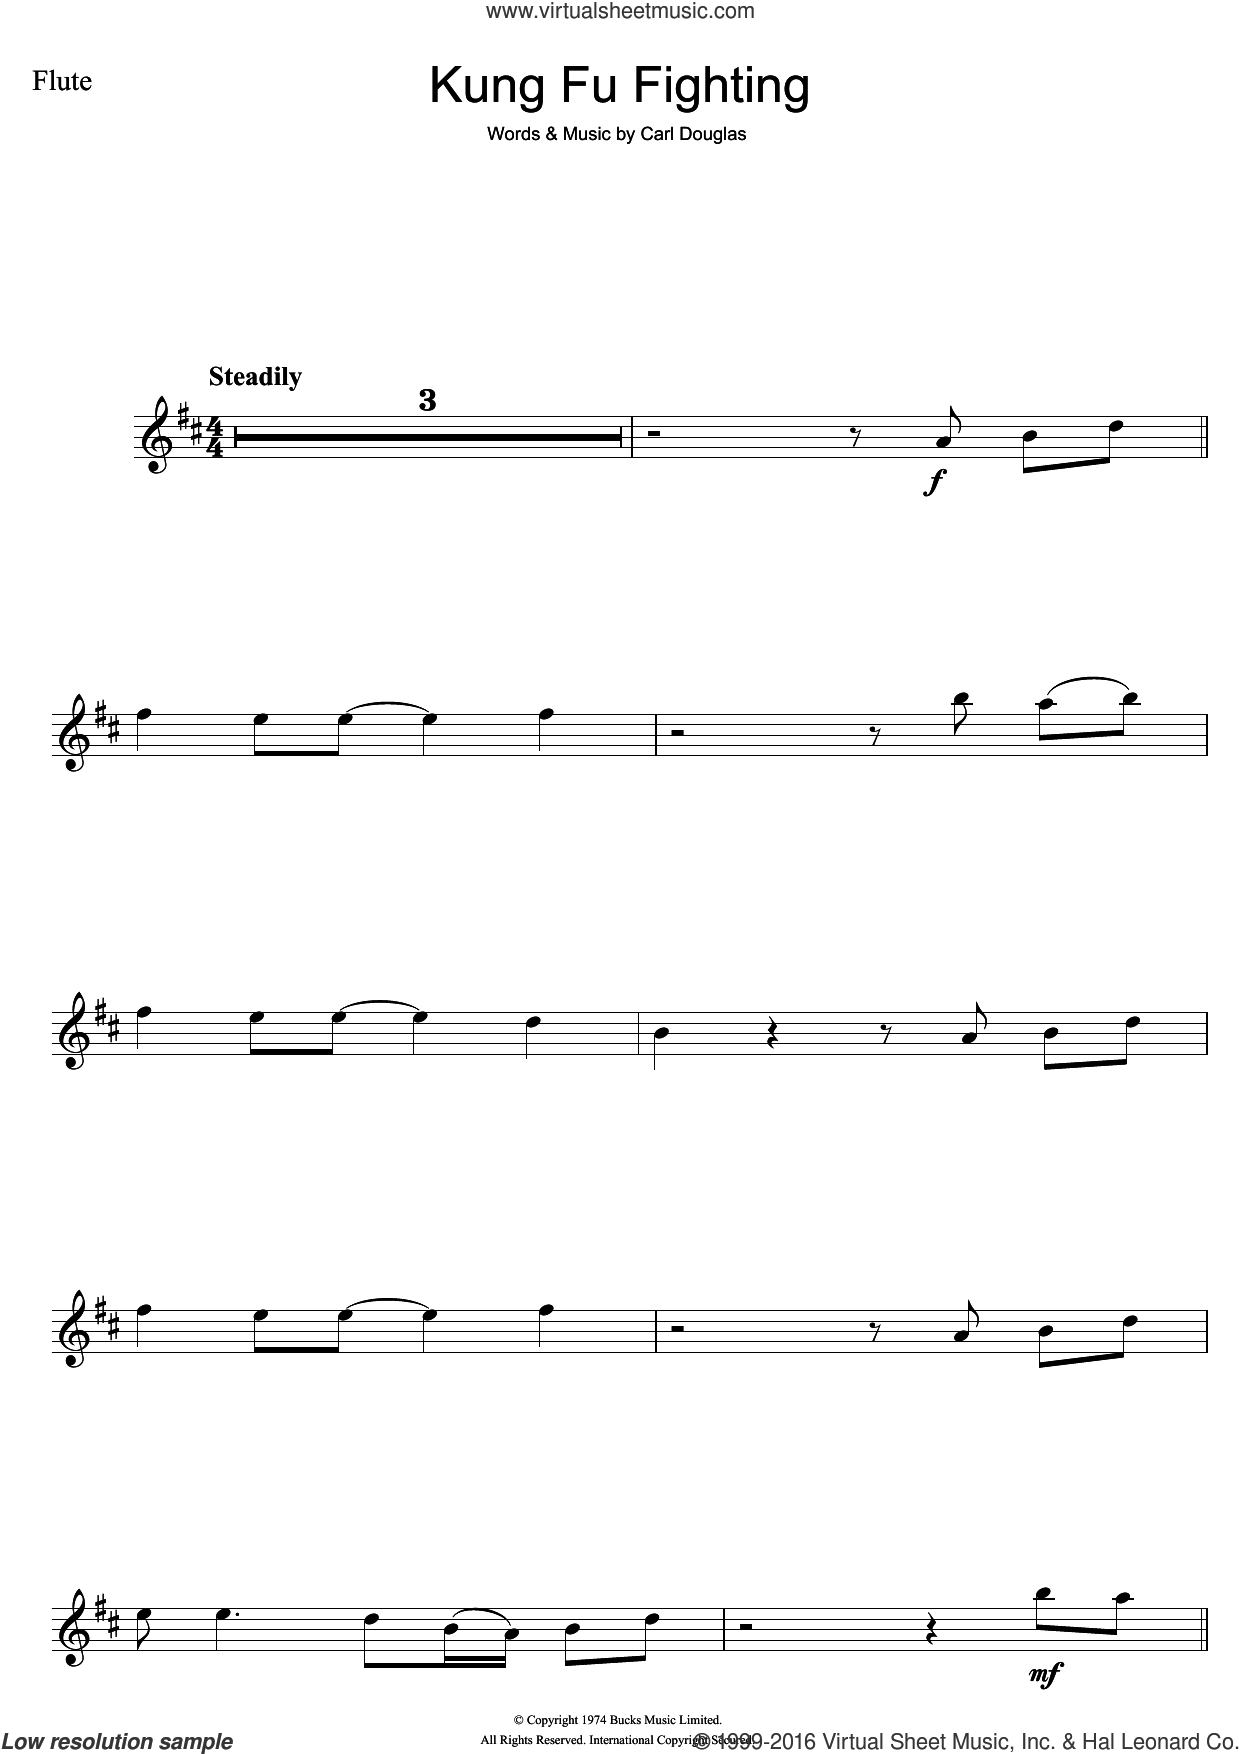 Kung Fu Fighting sheet music for flute solo by Carl Douglas. Score Image Preview.